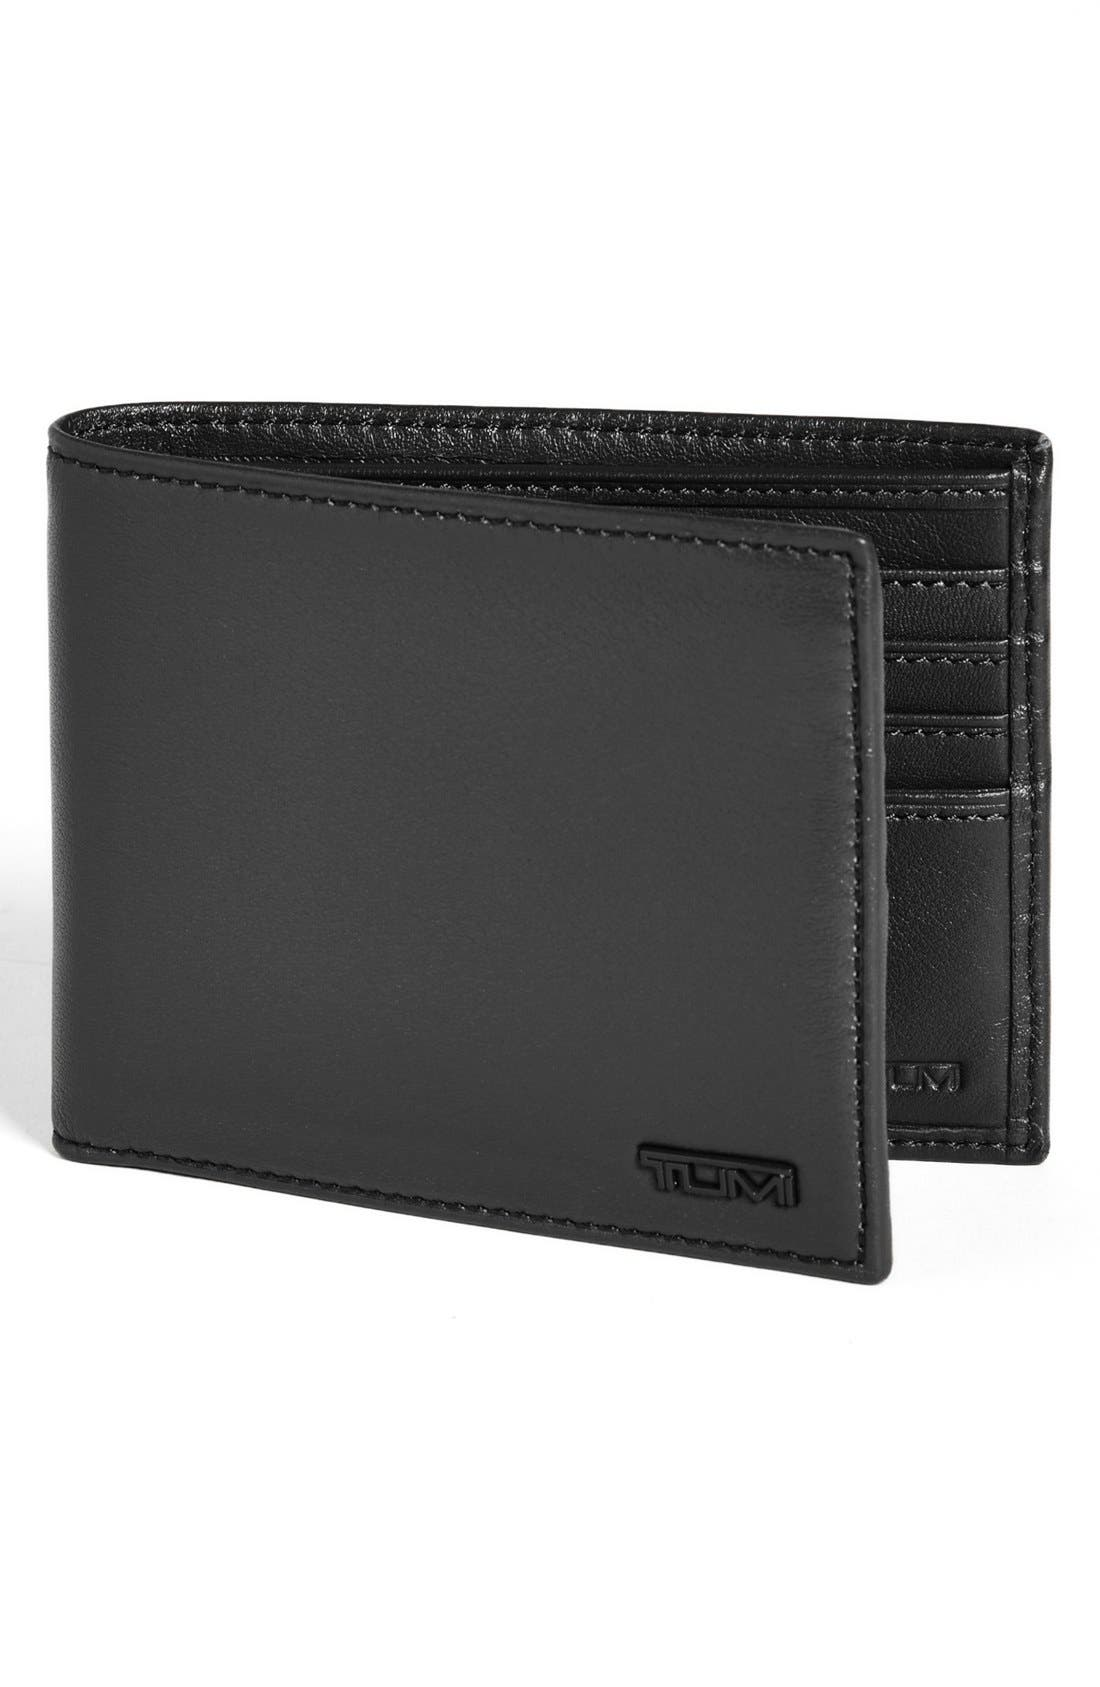 Alternate Image 1 Selected - Tumi 'Delta - Global' Double Billfold Wallet